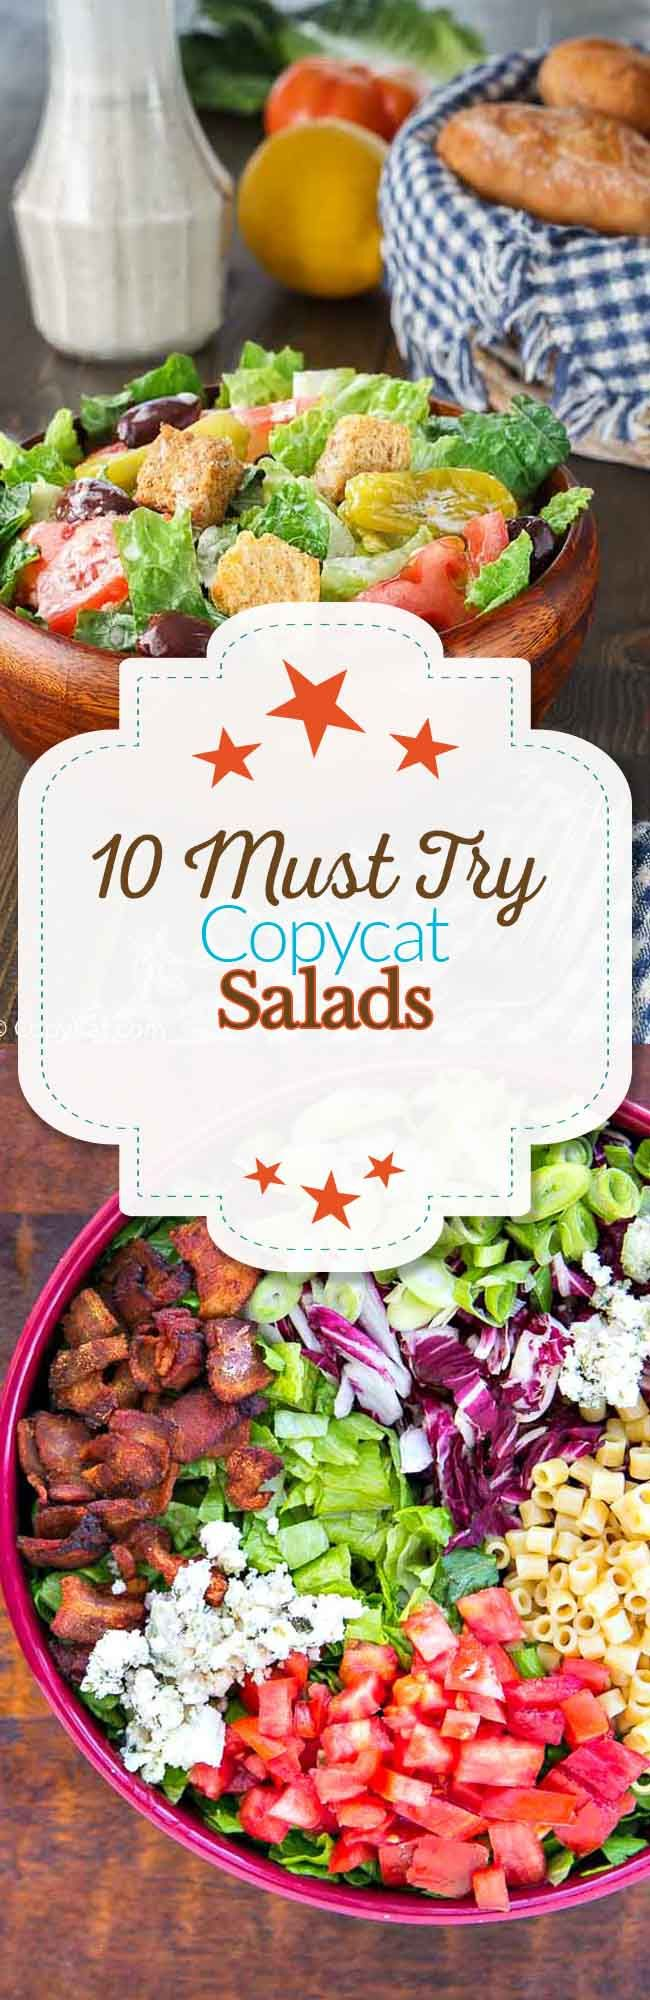 10 Unforgettable Copycat Salads, you are going to love these famous salad recipes and salad dressings.